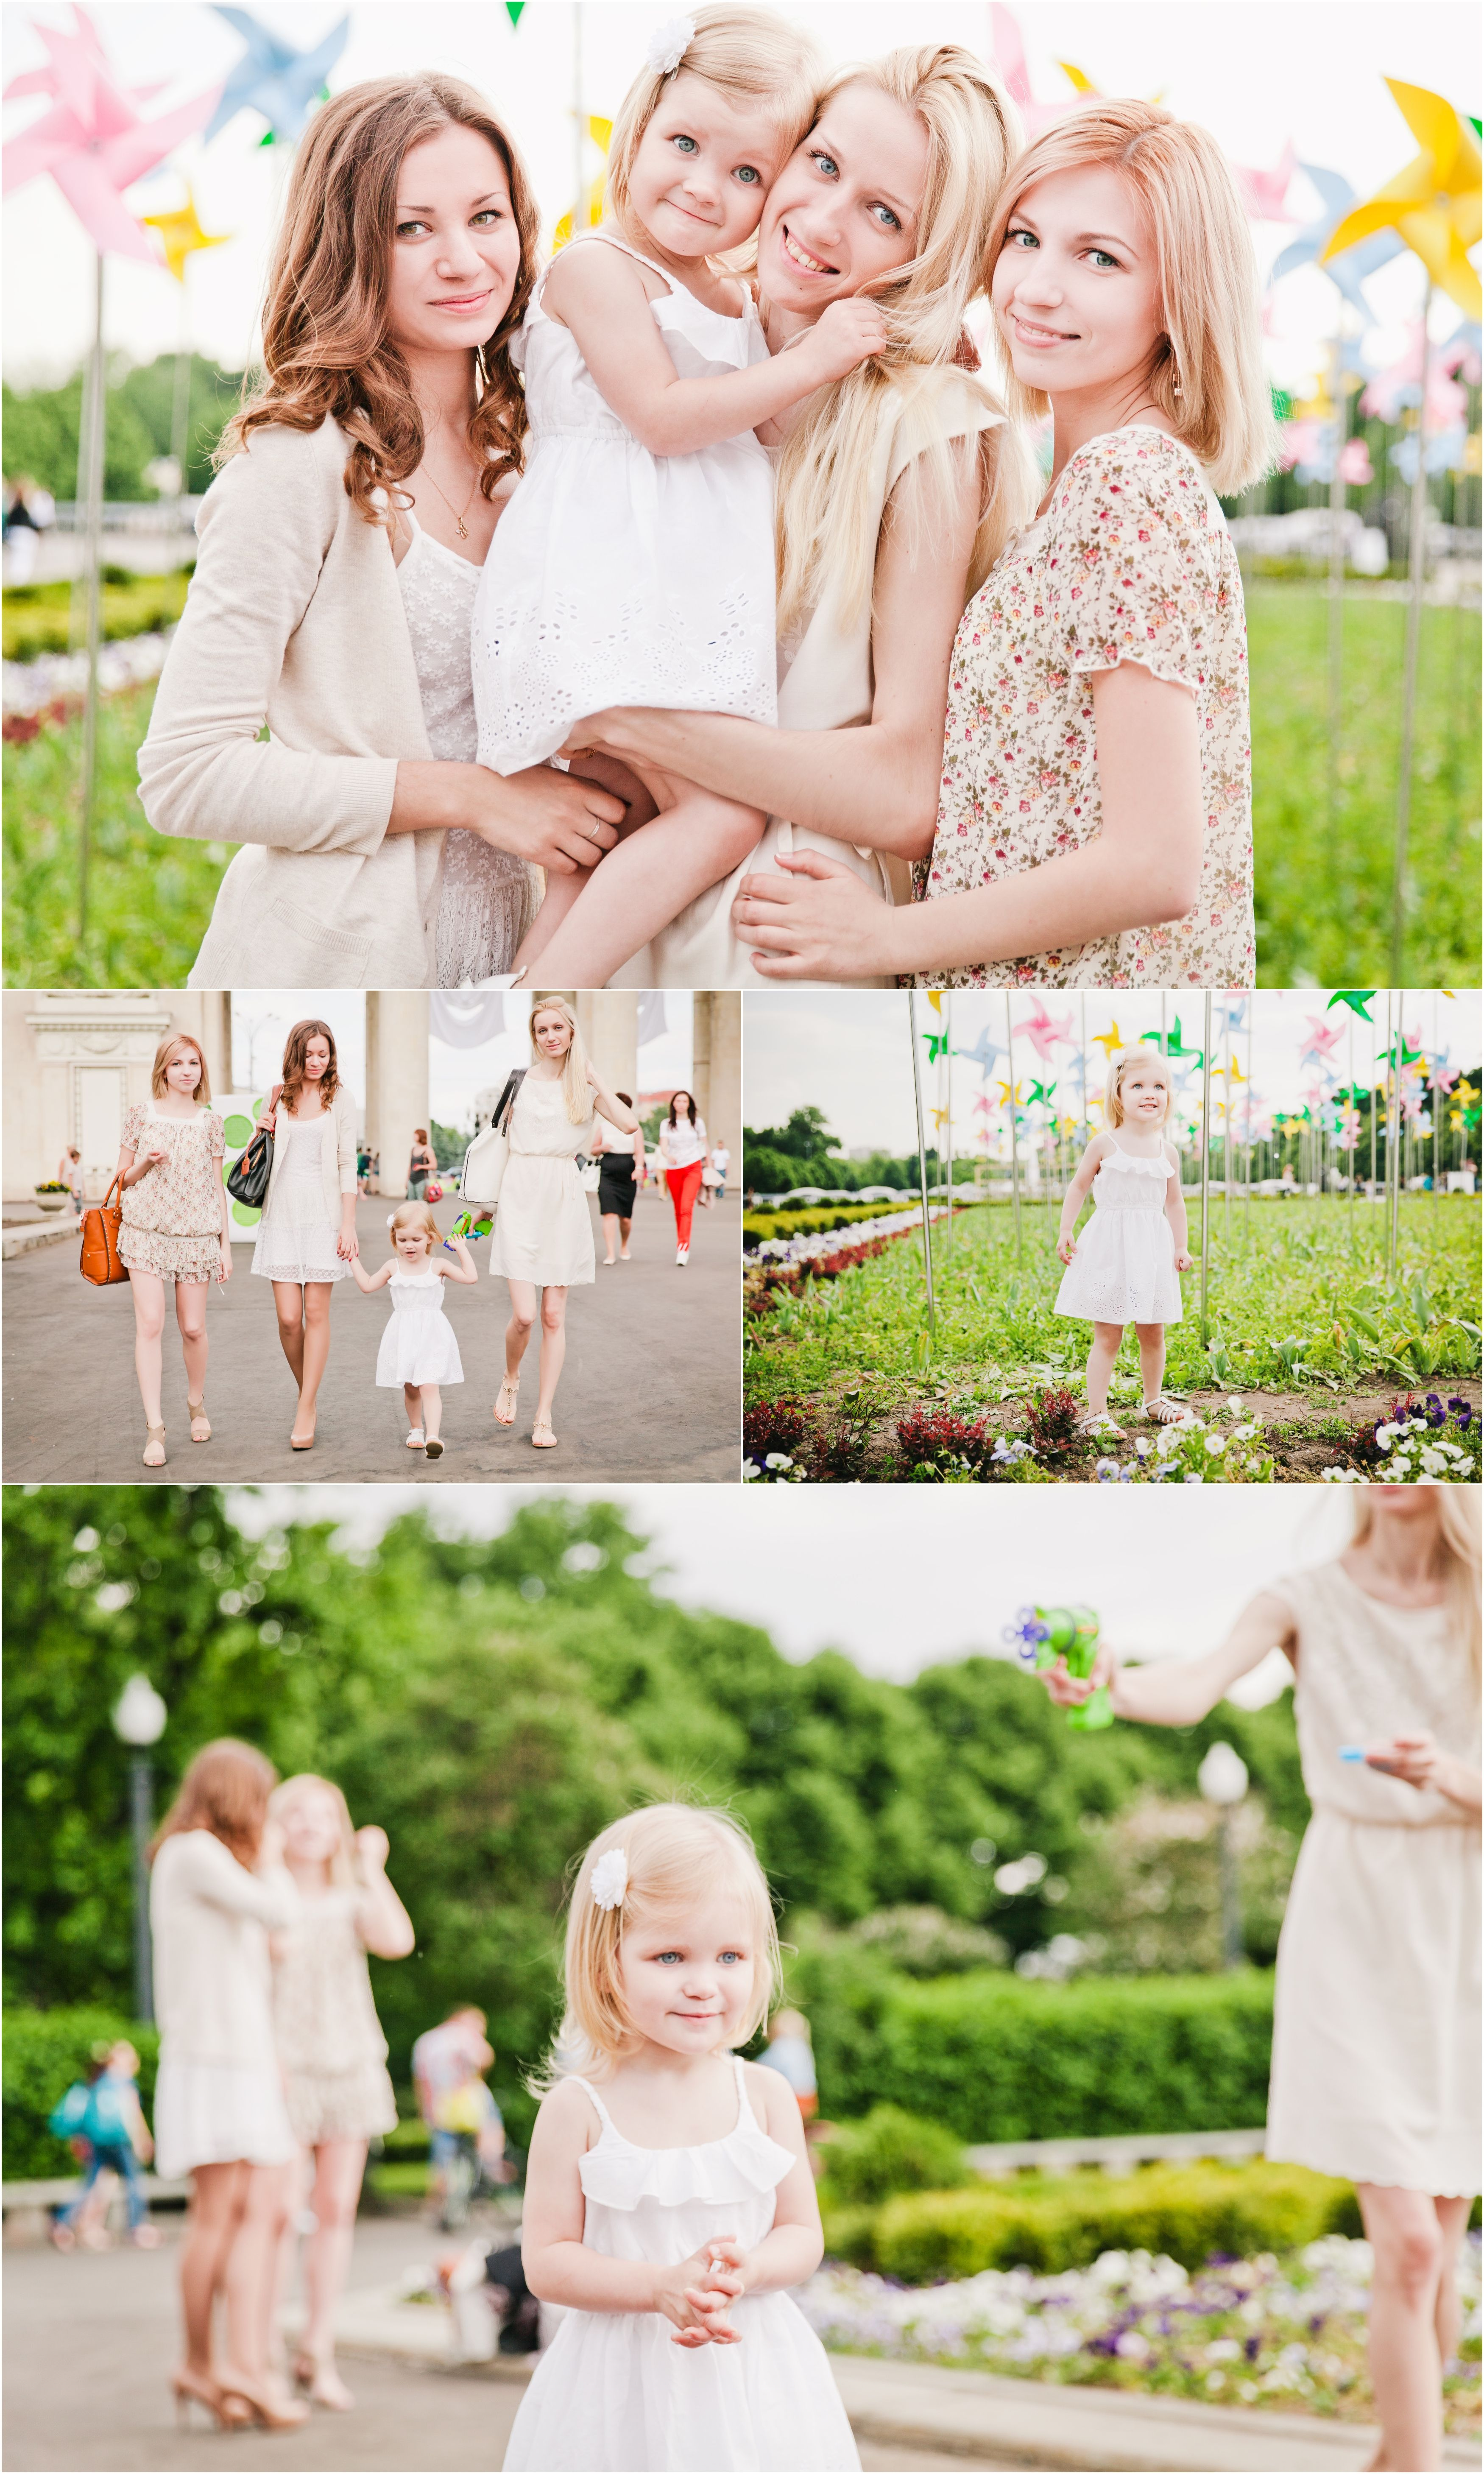 Family photo shoot,I like the color scheme | ideas//crafts ...